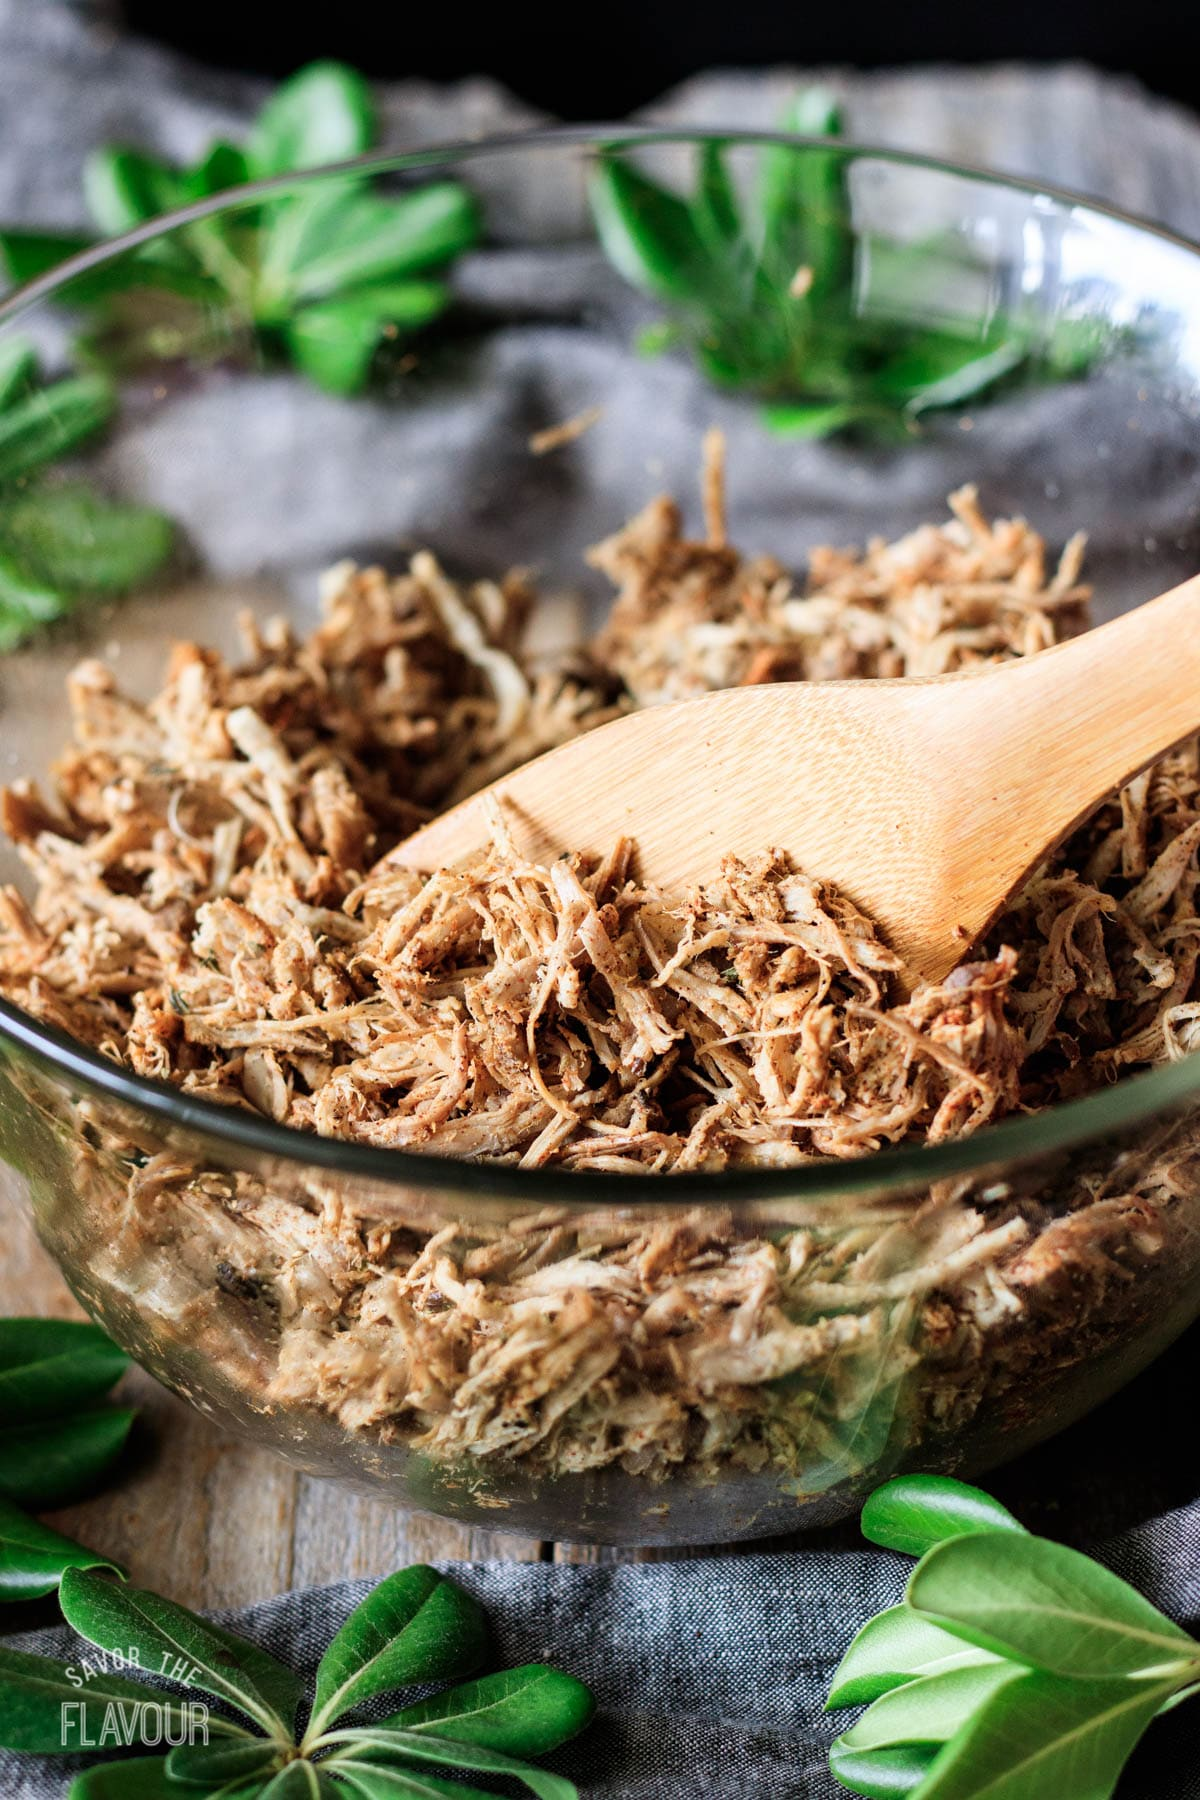 tossing the shredded pork with spices